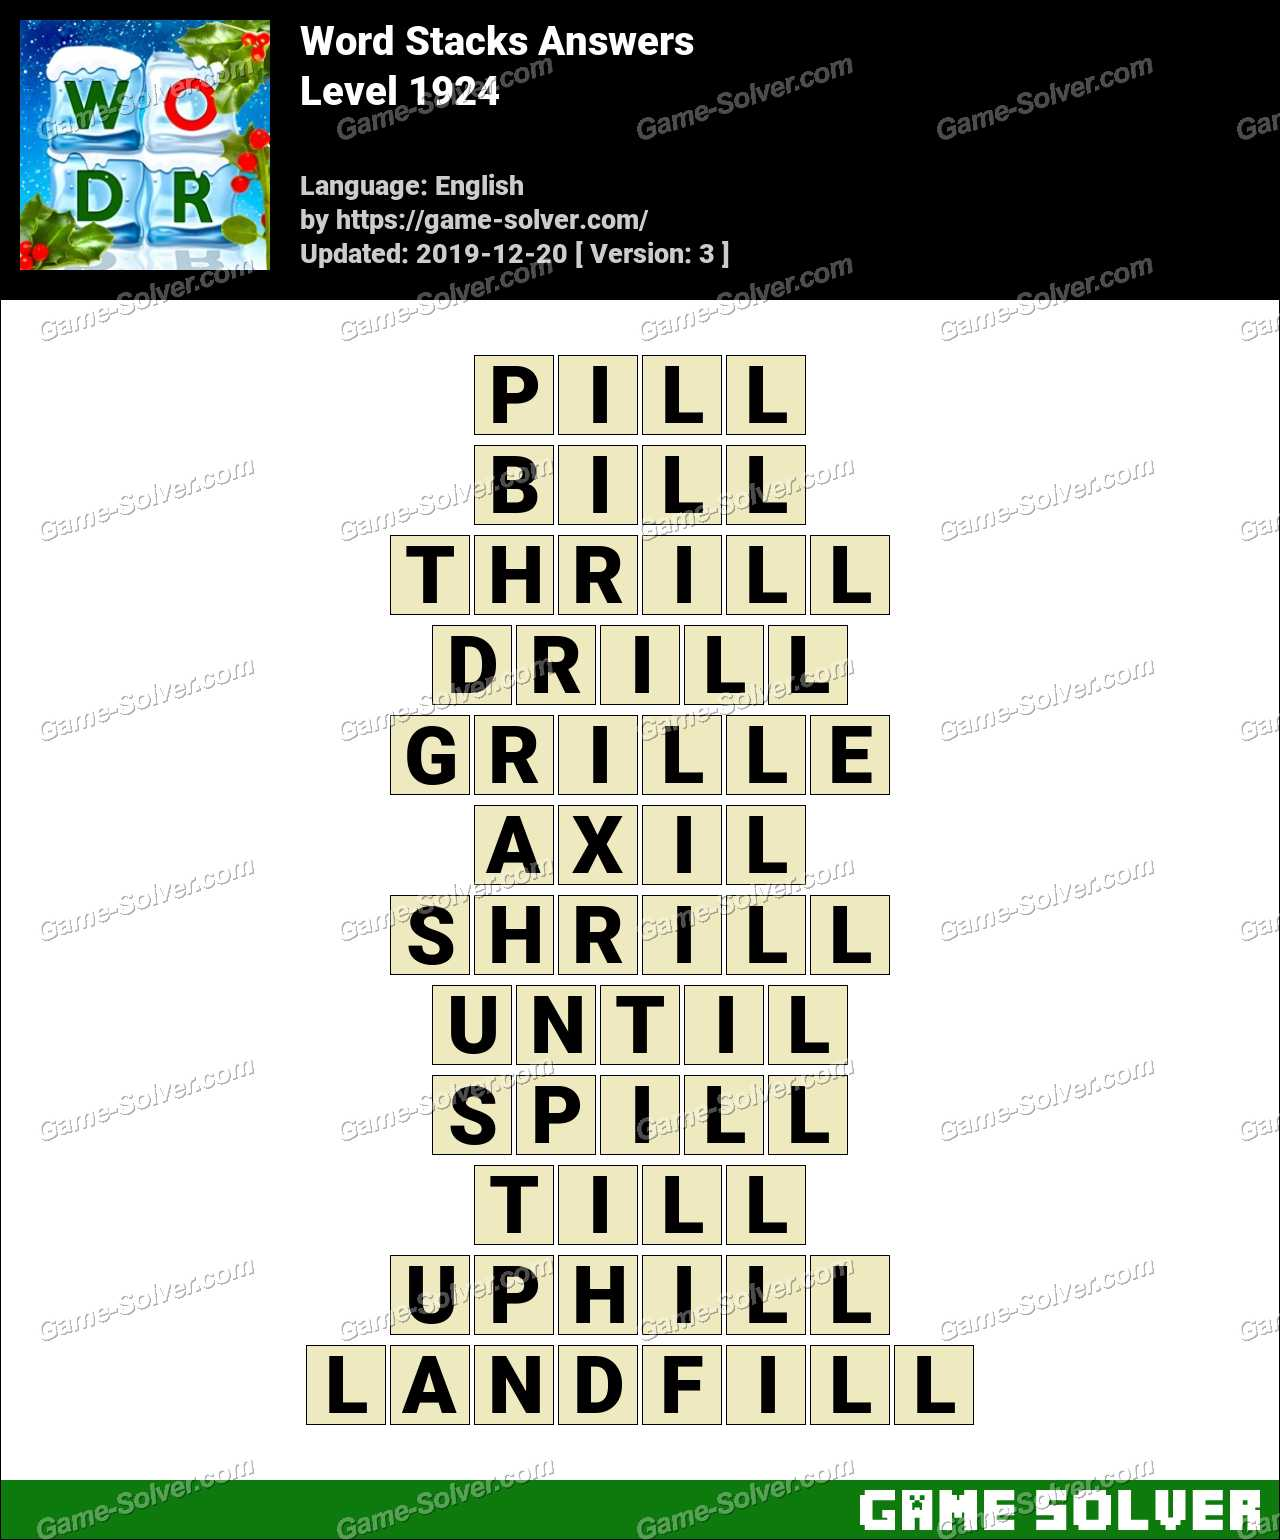 Word Stacks Level 1924 Answers